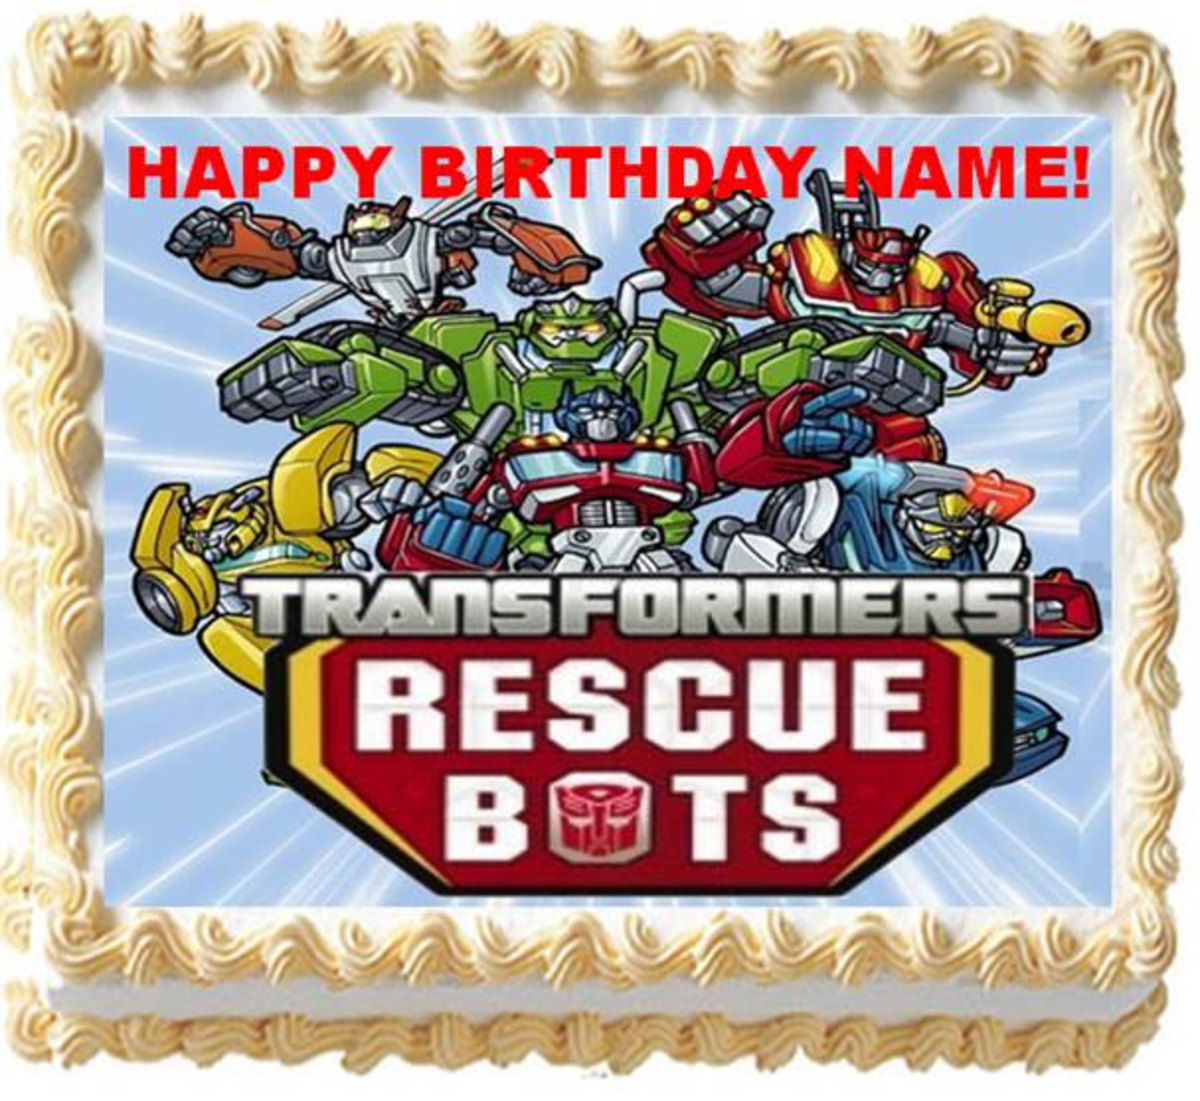 Transformers Rescue Bots birthday party supplies and themed ideas